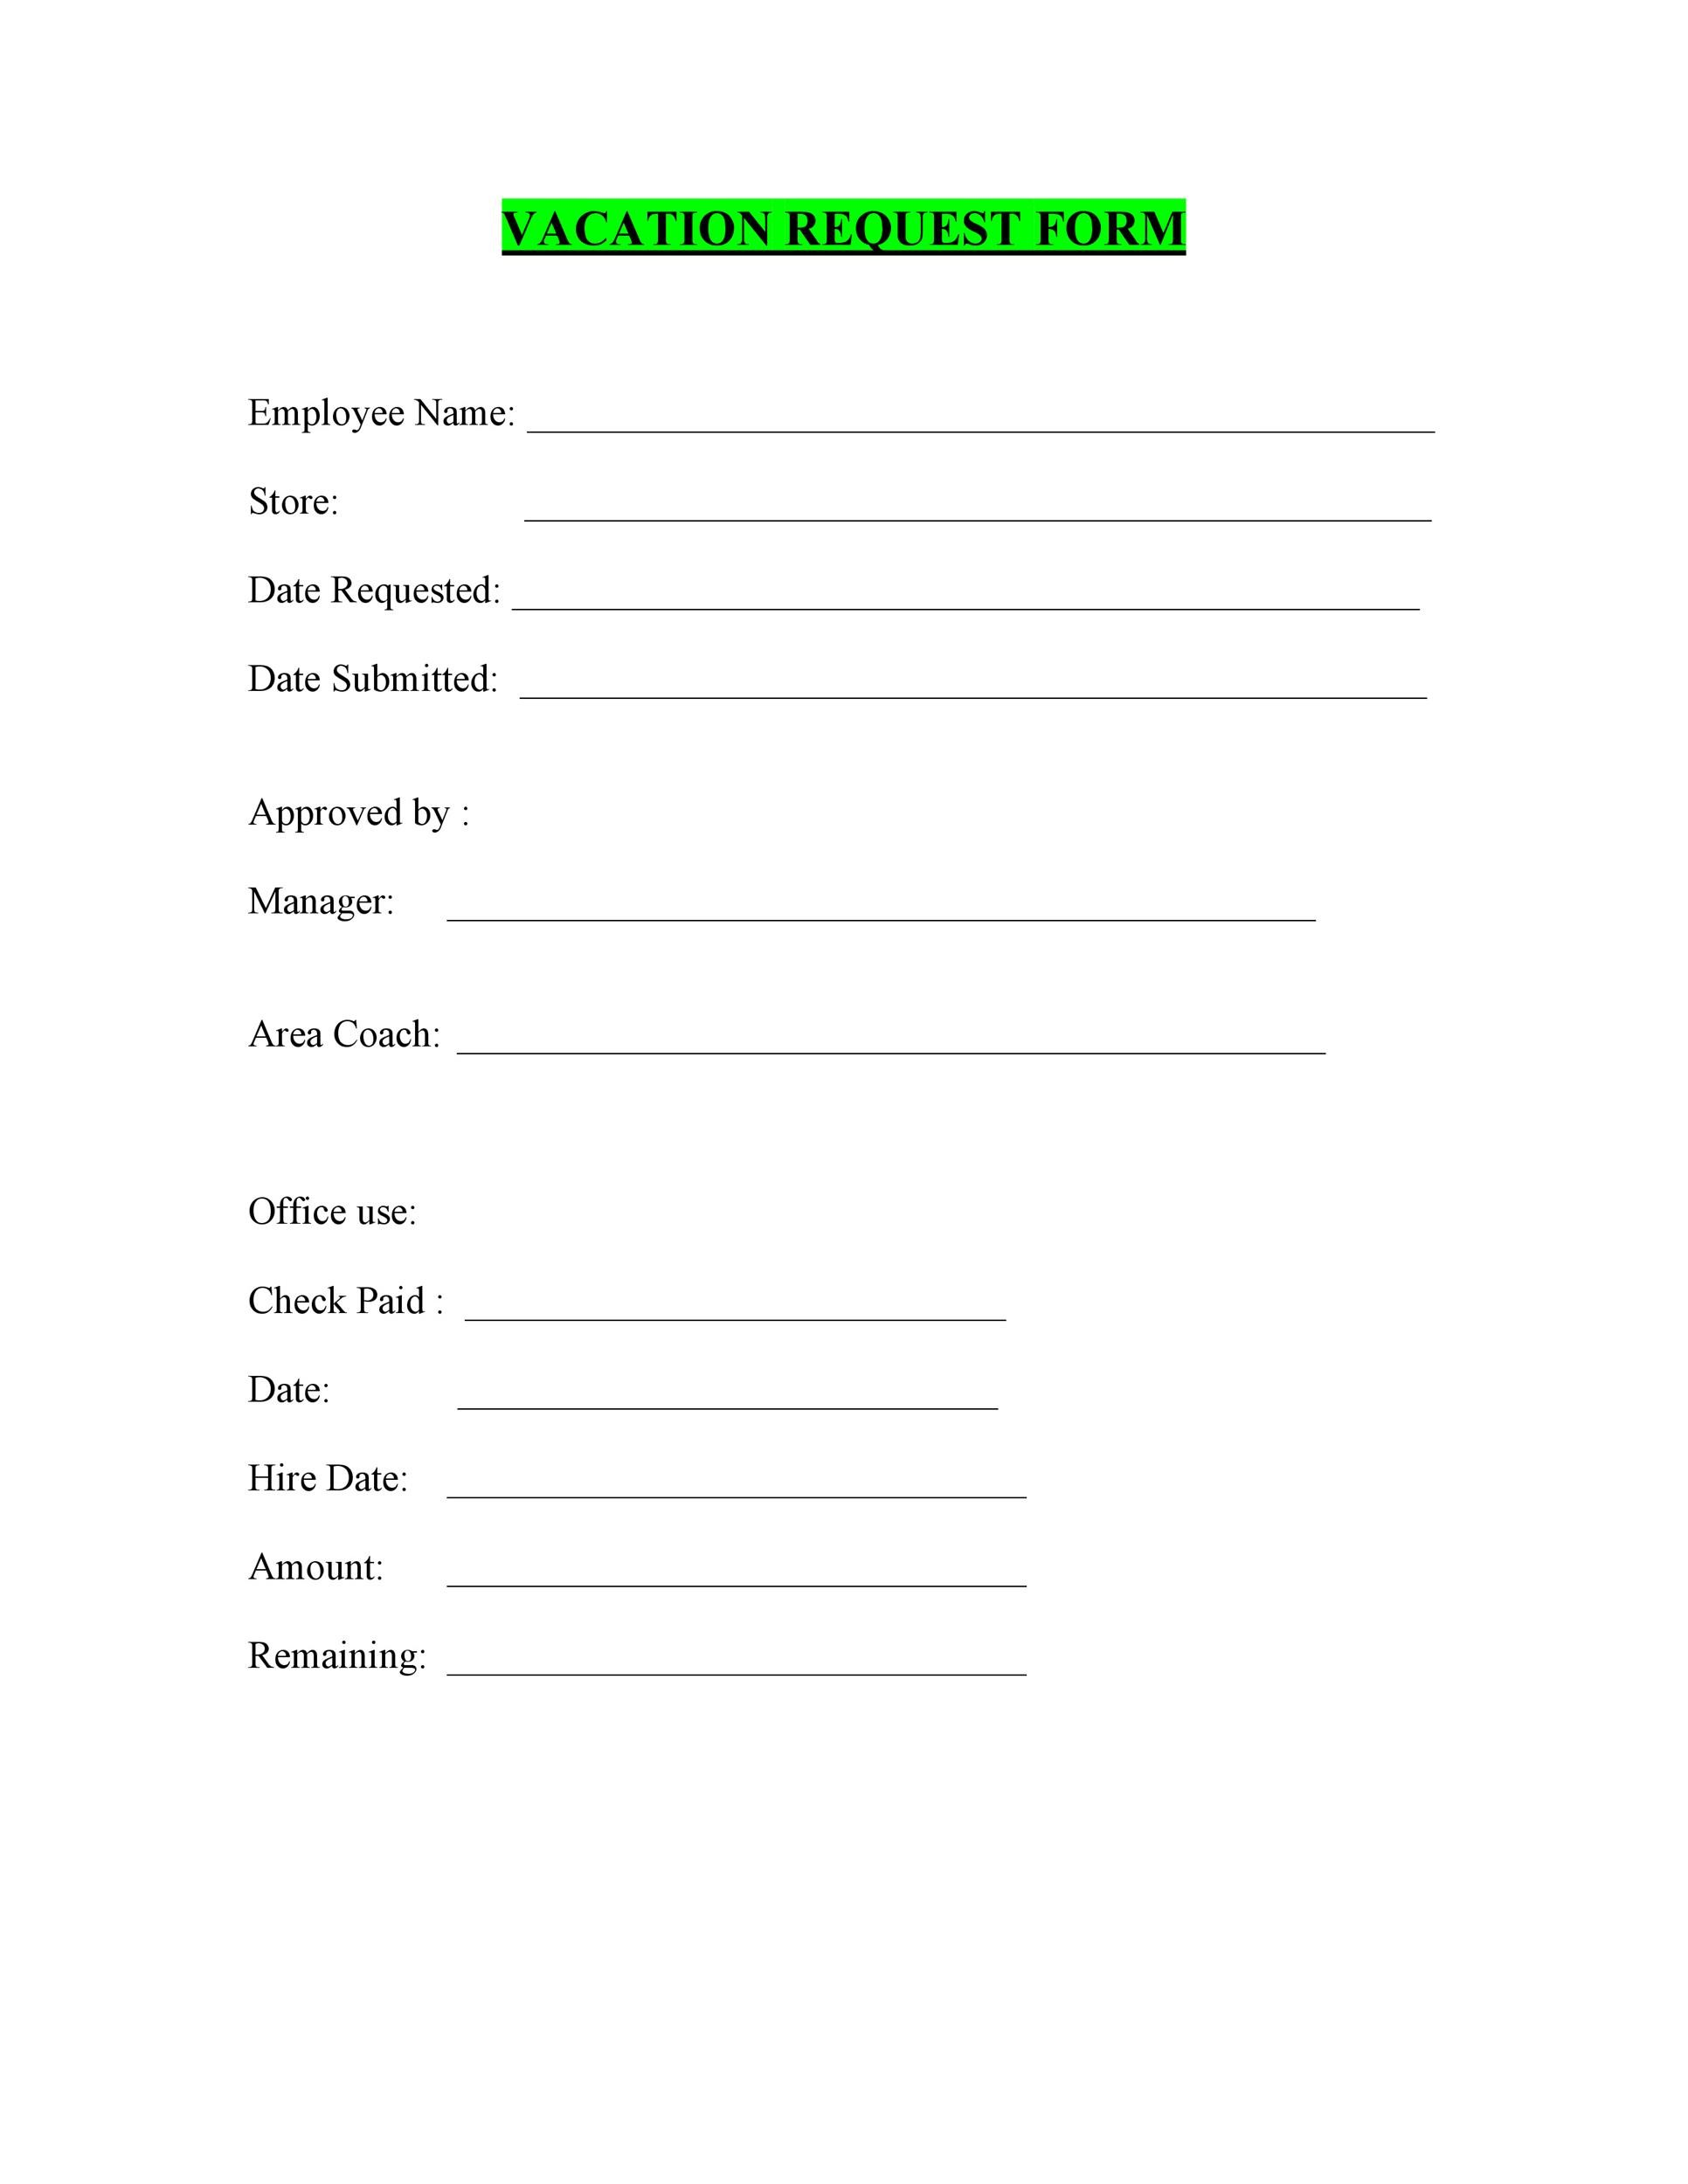 Free vacation request form 21